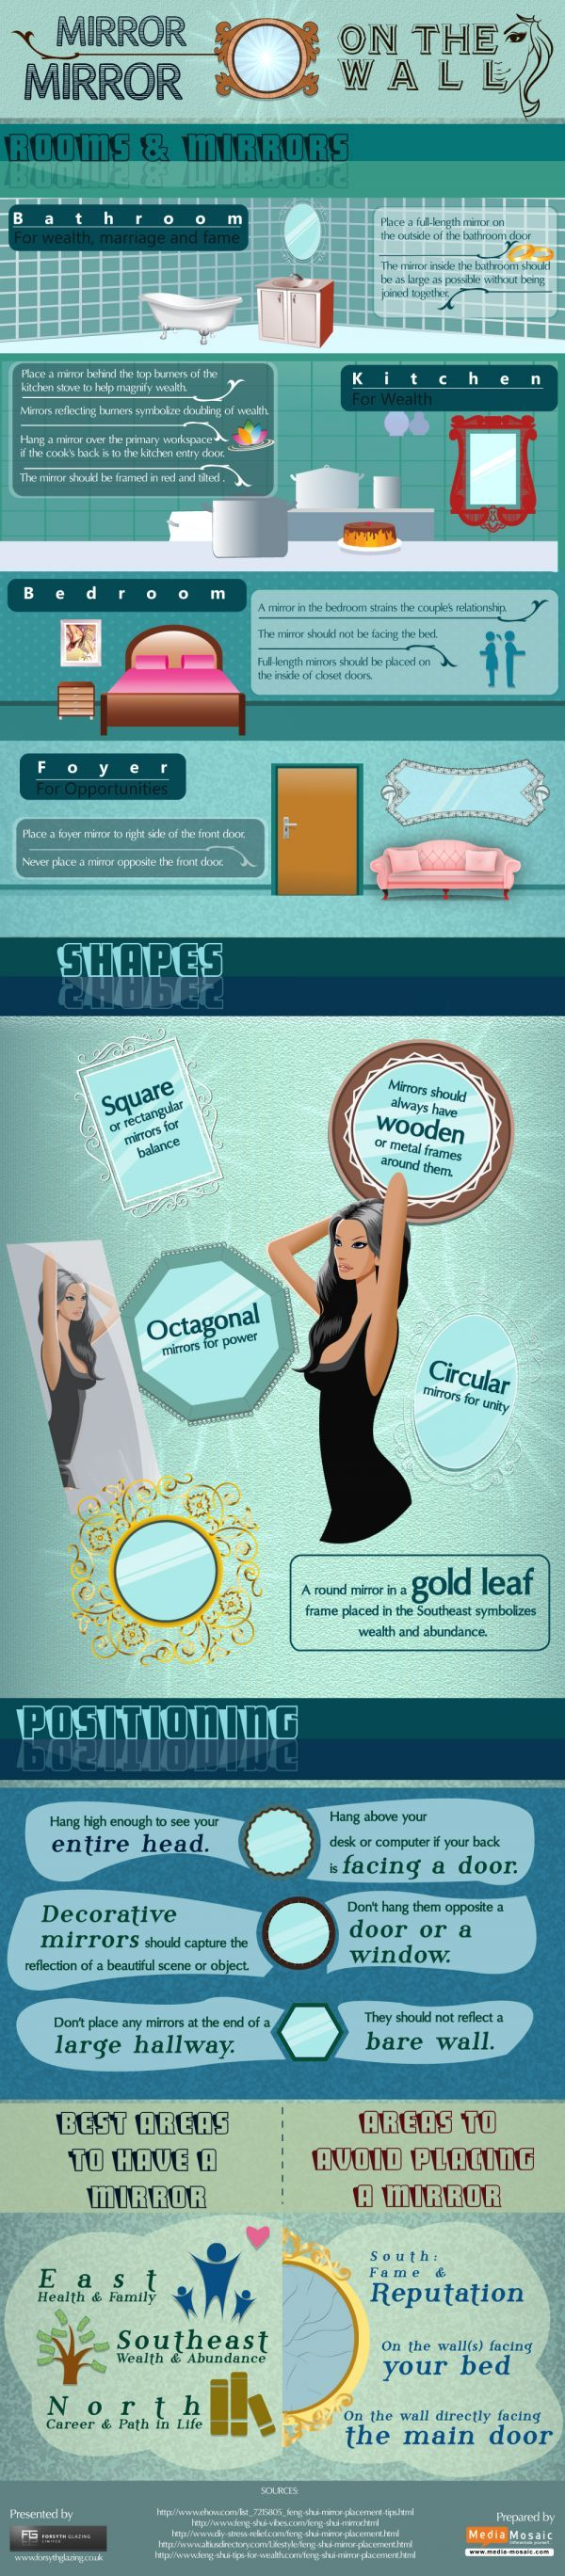 17 best Feng Shui Mirrors images on Pinterest | Feng shui tips, Feng ...